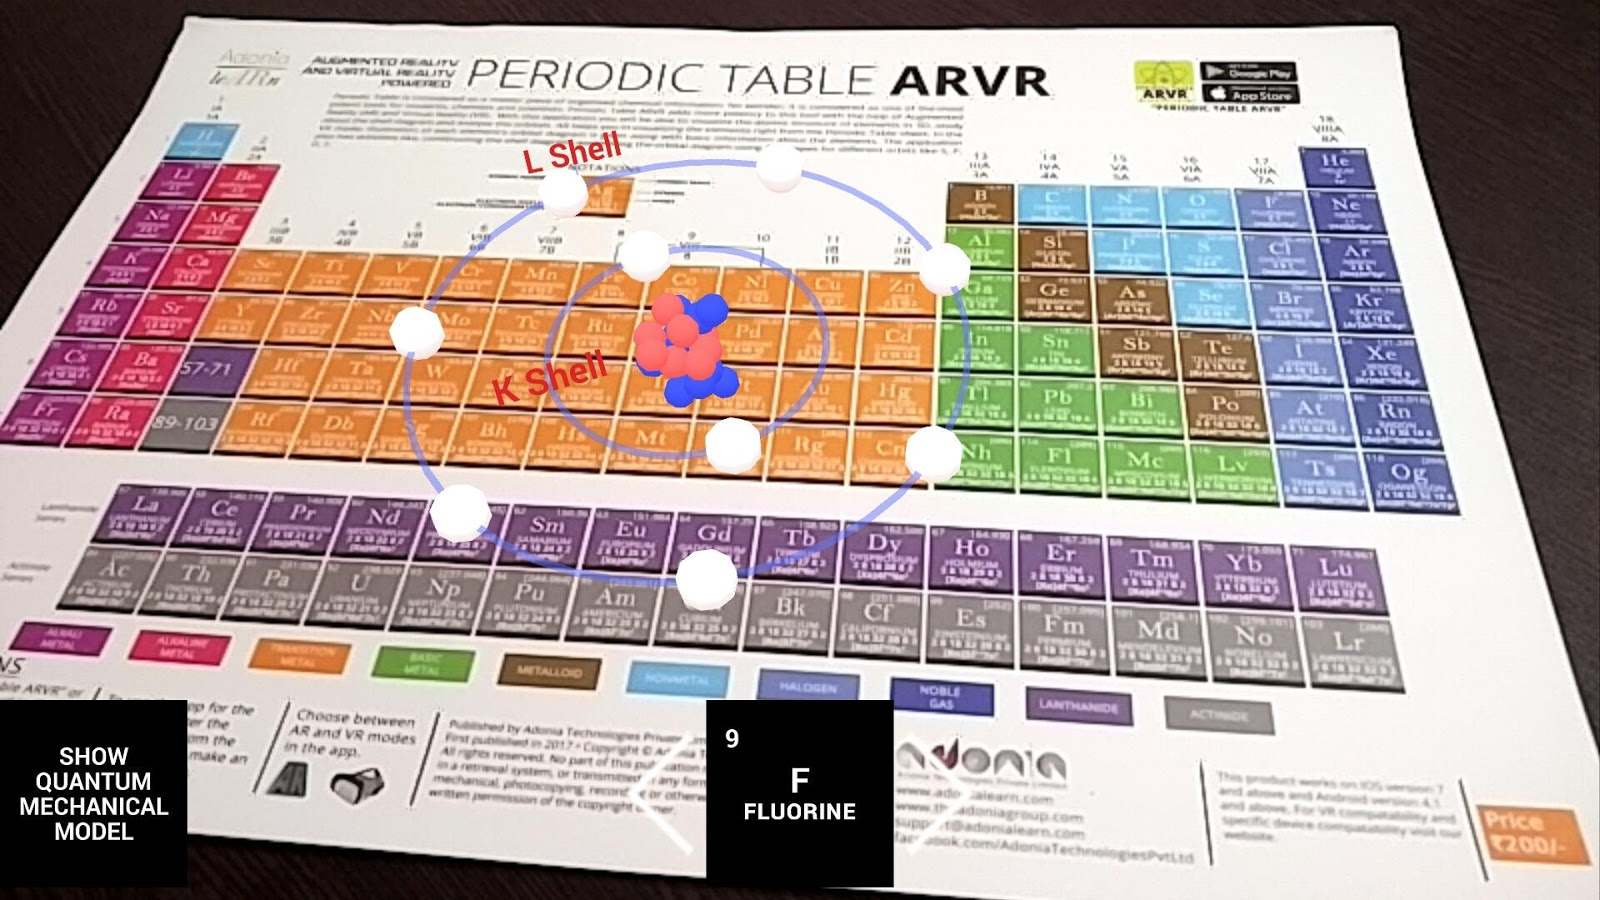 Periodic table arvr android apps on google play periodic table arvr screenshot gamestrikefo Image collections